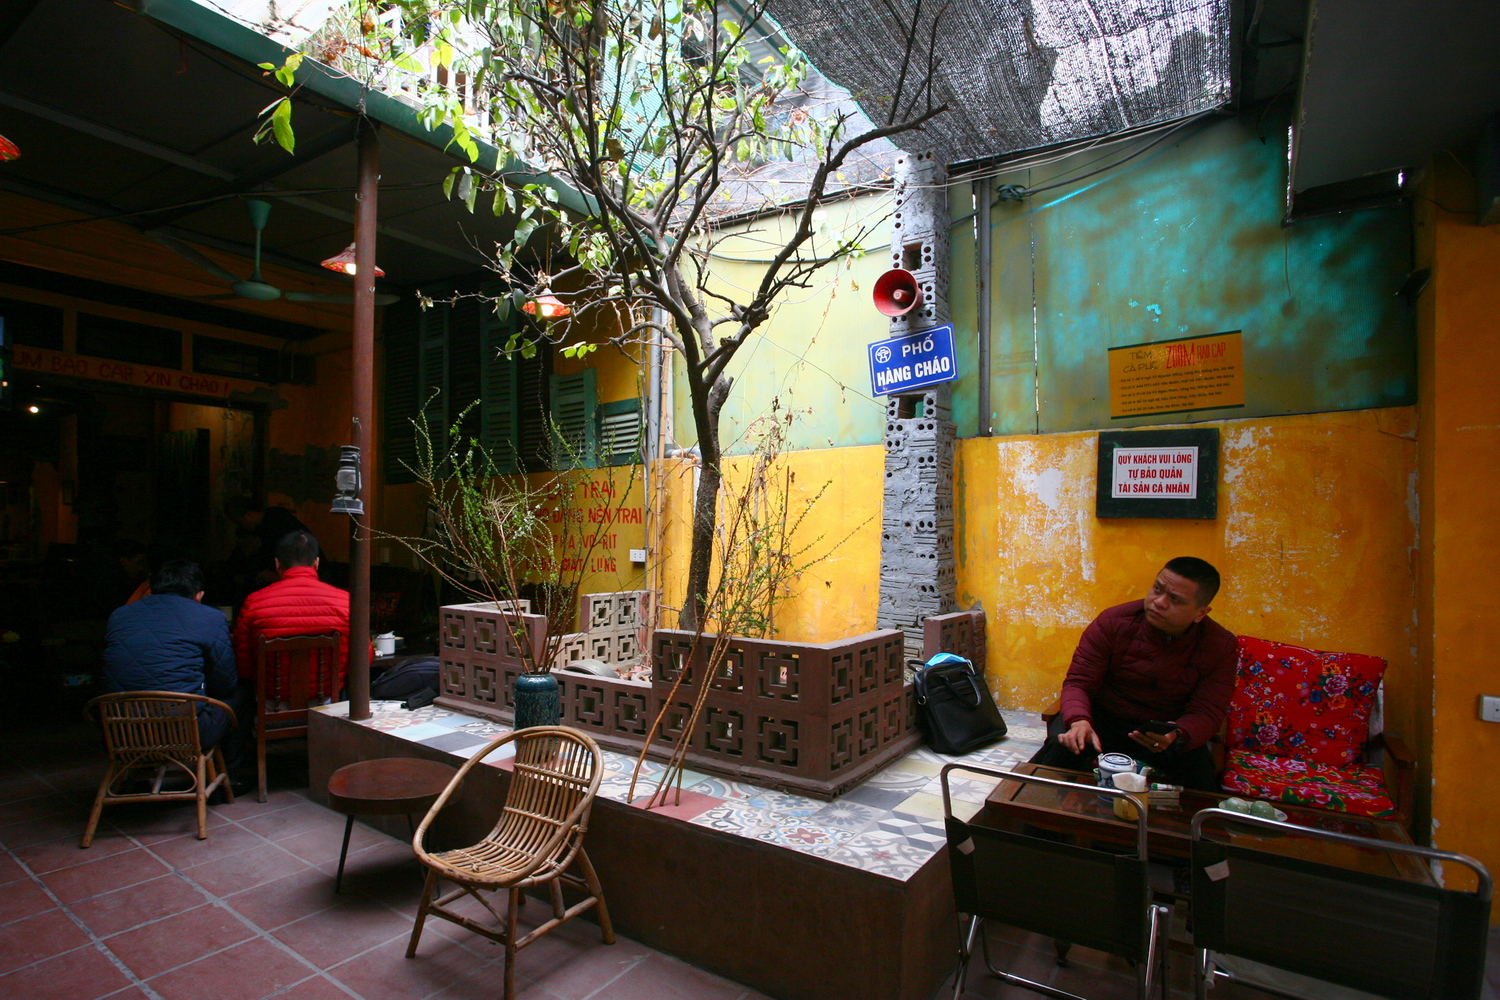 The Zum Coffee shop is located on the first floor of an old dormitory in a small alley at 110 C6 Vu Ngoc Phan street, Dong Da district. The outside of the shop doesn't look any different from many other dormitories. There is a small yard for trees right in front of the shop. The architecture of the building is almost unchanged.